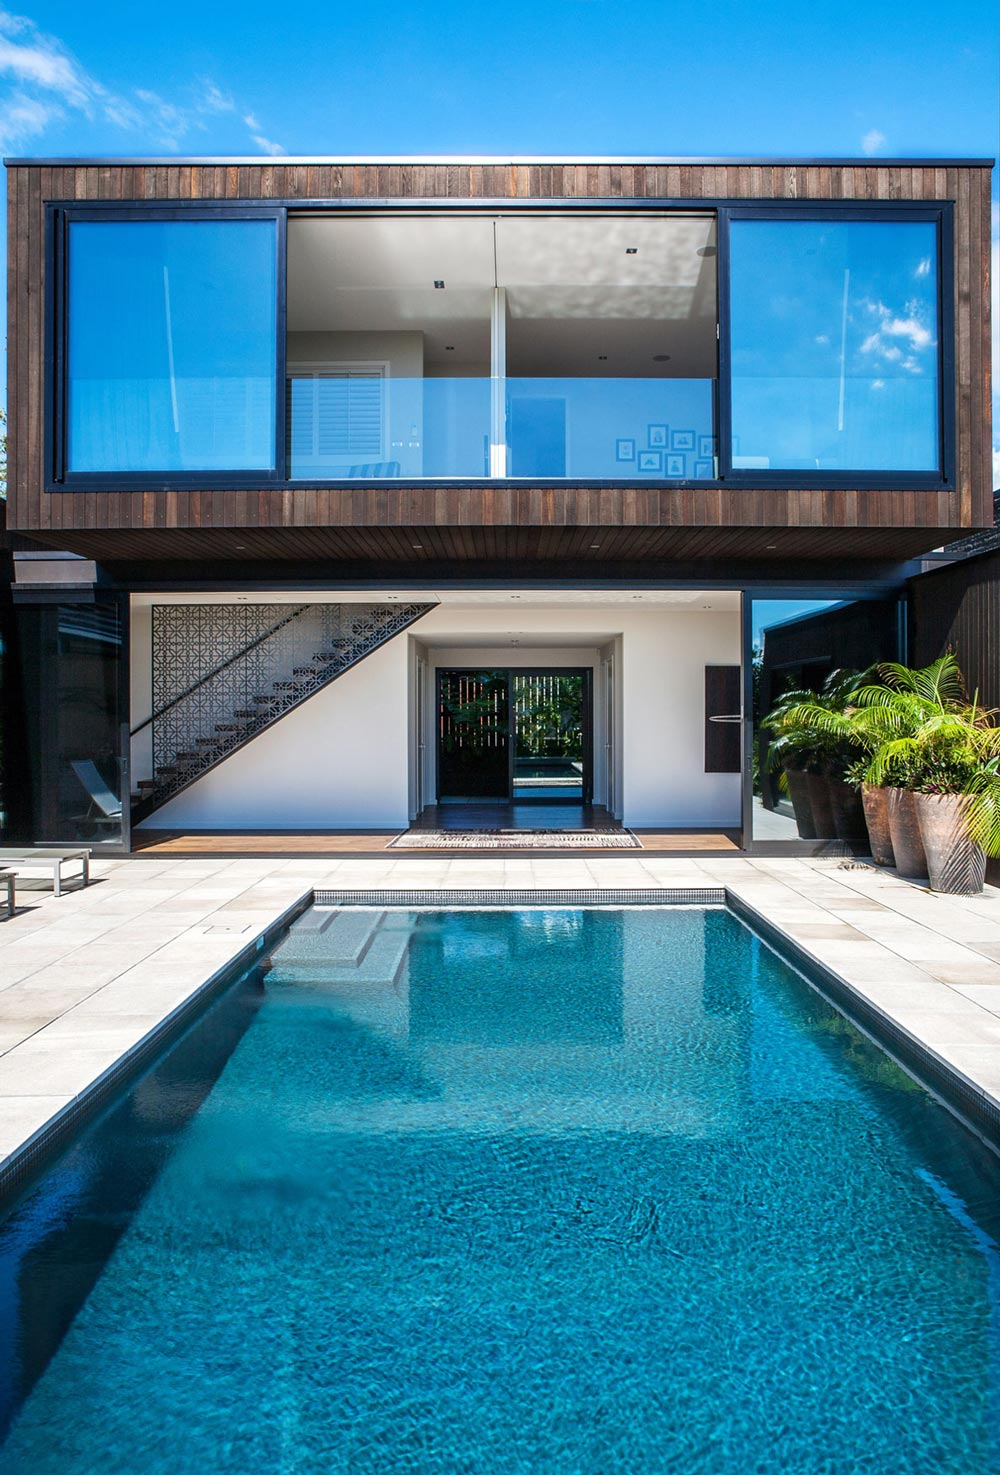 Tasteful Modern House in Auckland New Zealand : Swimming Pool Terrace Large Windows Modern House Auckland New Zealand from www.freshpalace.com size 1000 x 1475 jpeg 256kB